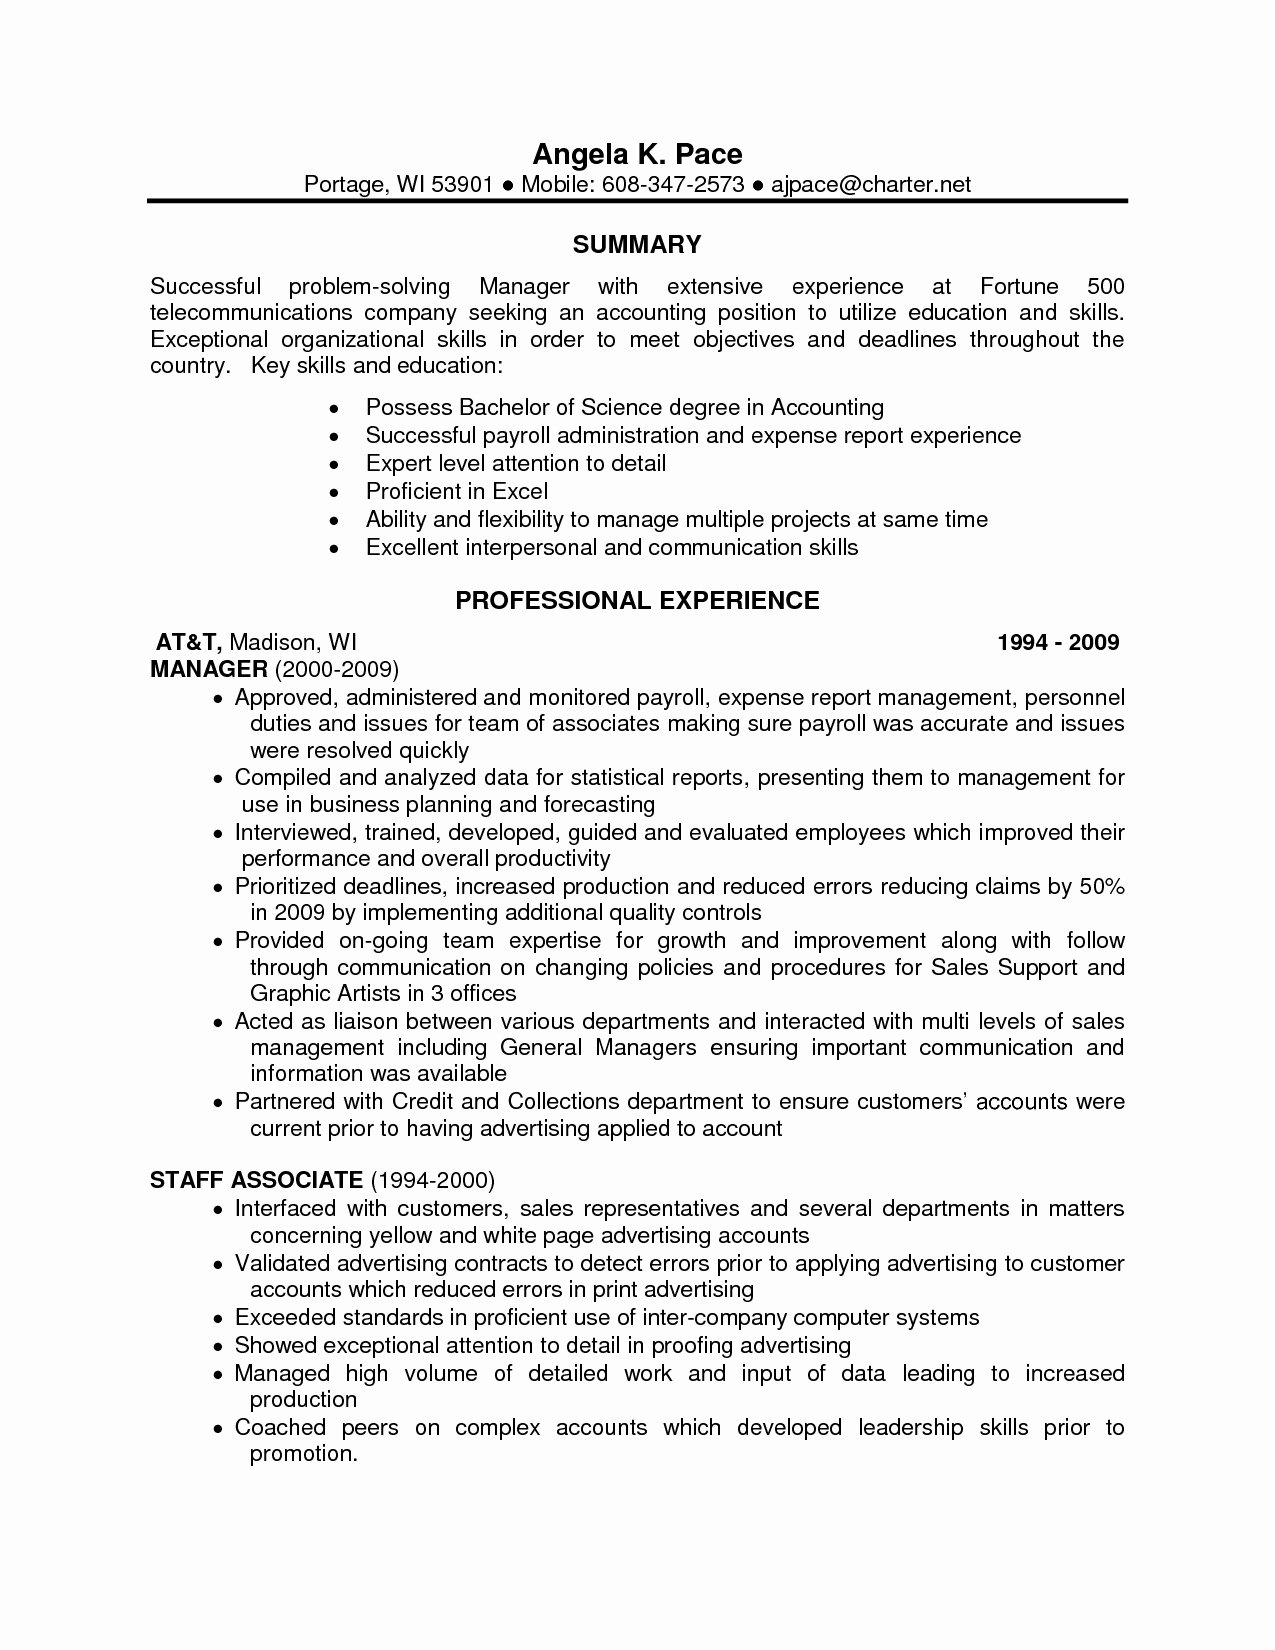 What Should Be the Key Skills In Resume Resume Ideas